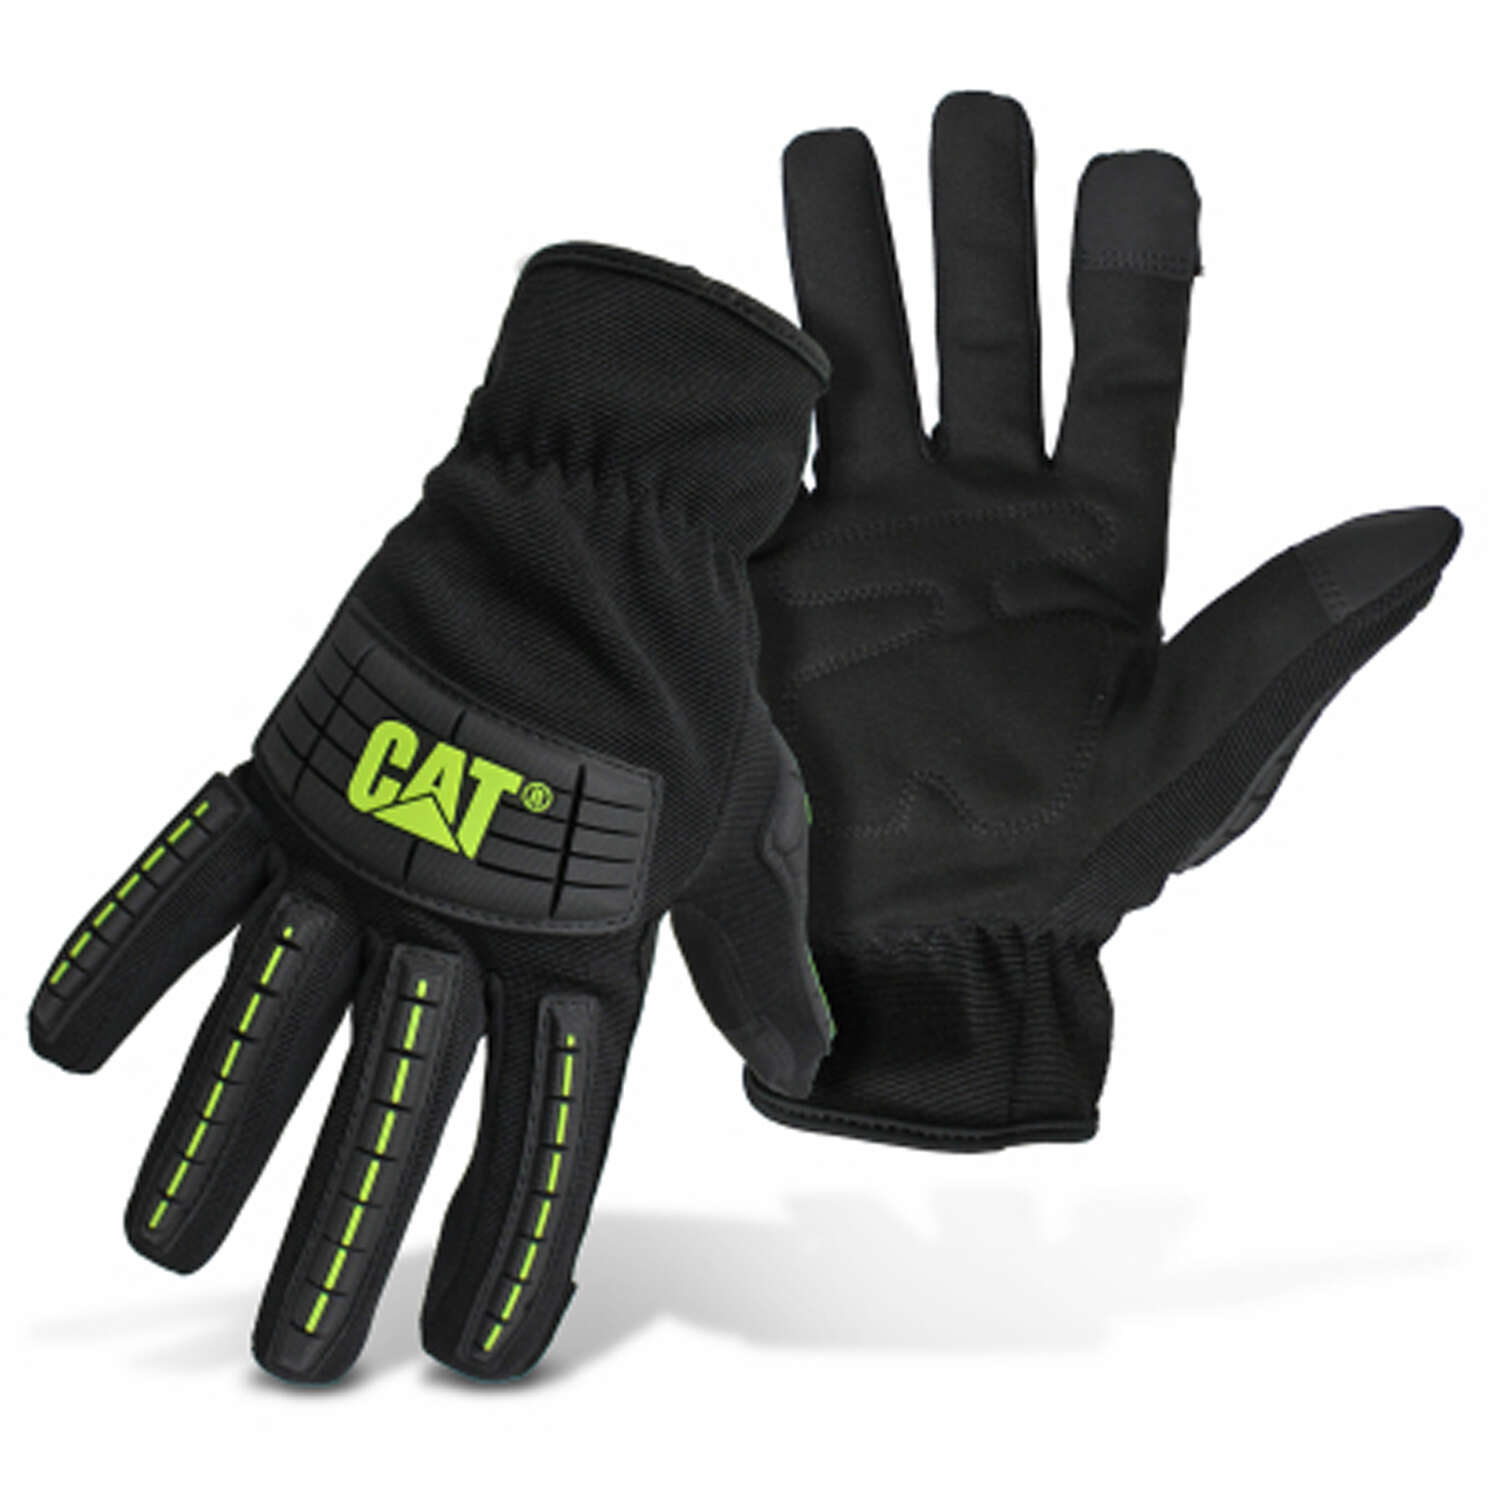 CAT Men's Outdoor High Impact Utility Gloves Black XL 1 pair